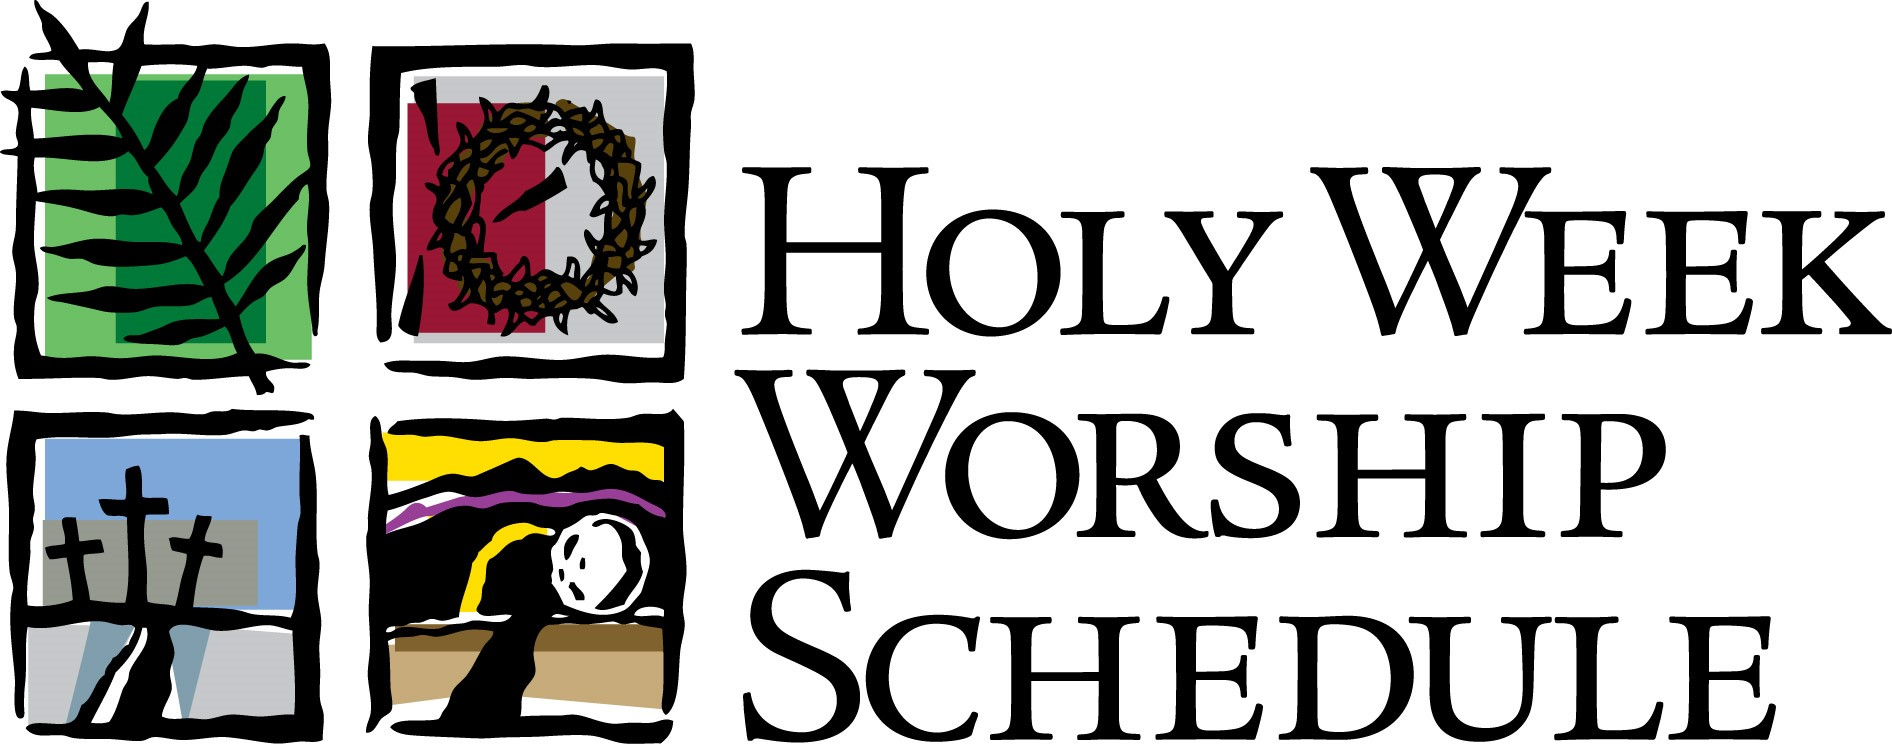 Holy Week Schedule for 2016